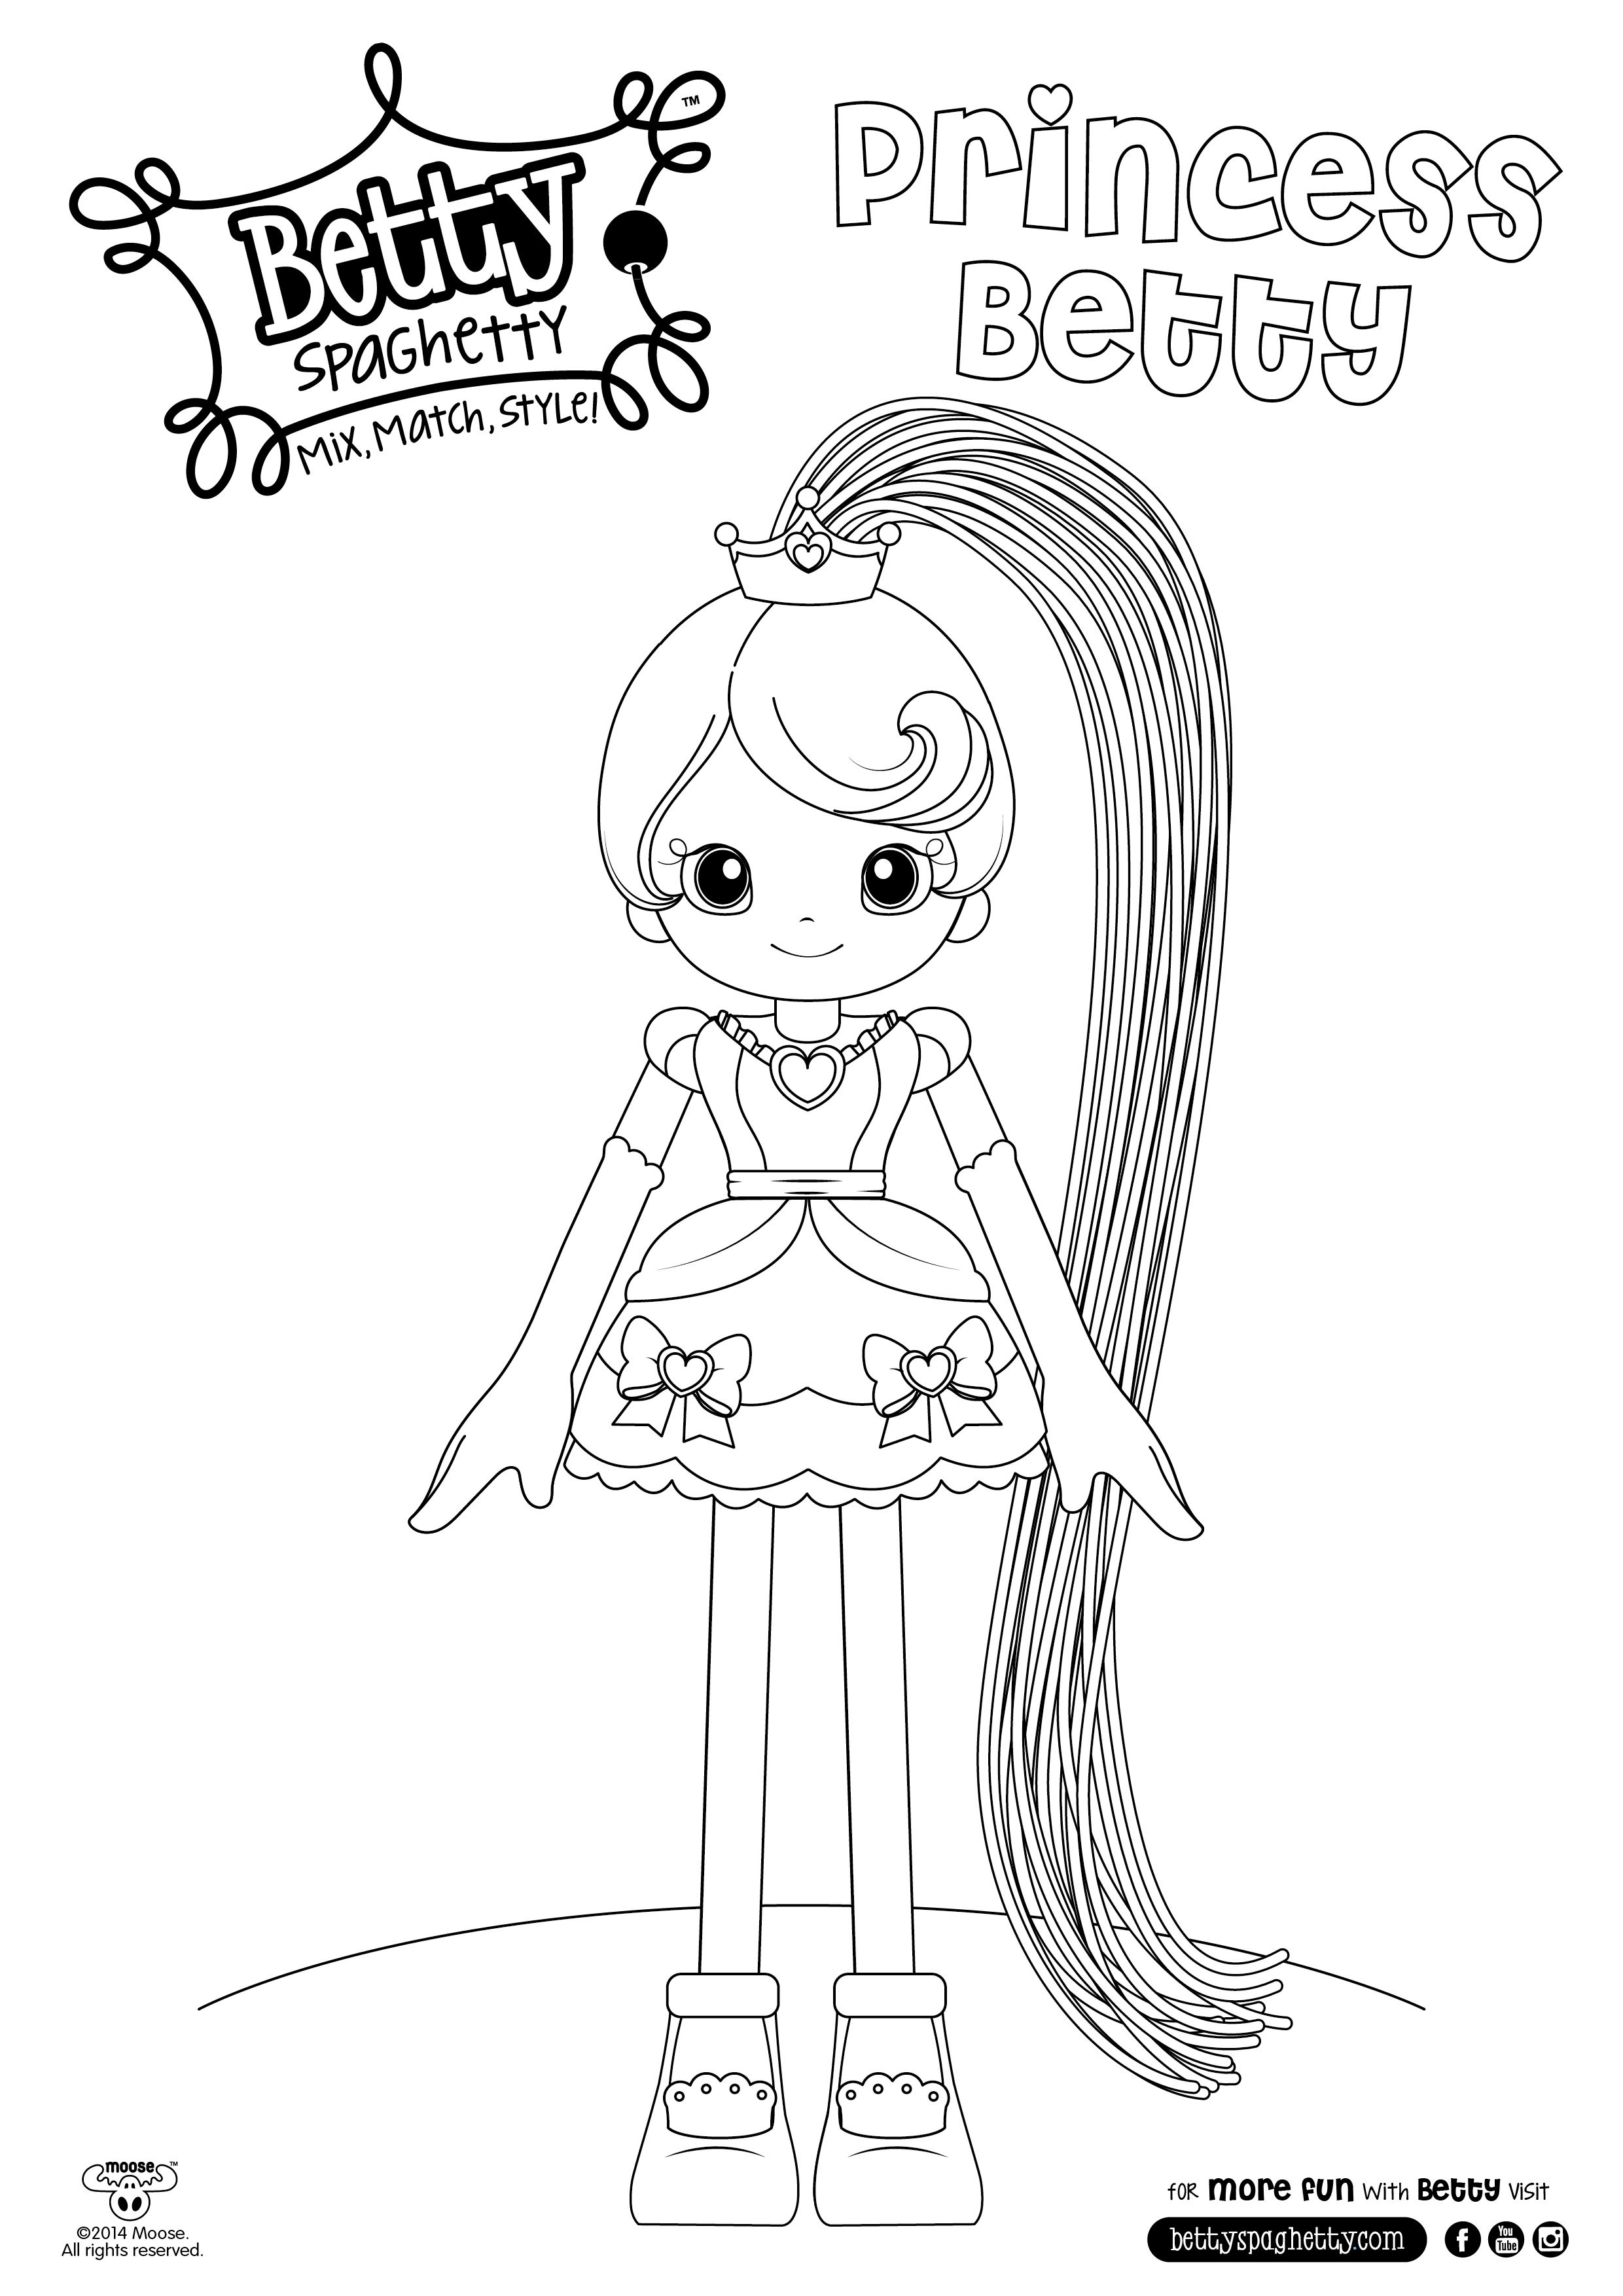 Betty Spaghetti | coloring pages | Pinterest